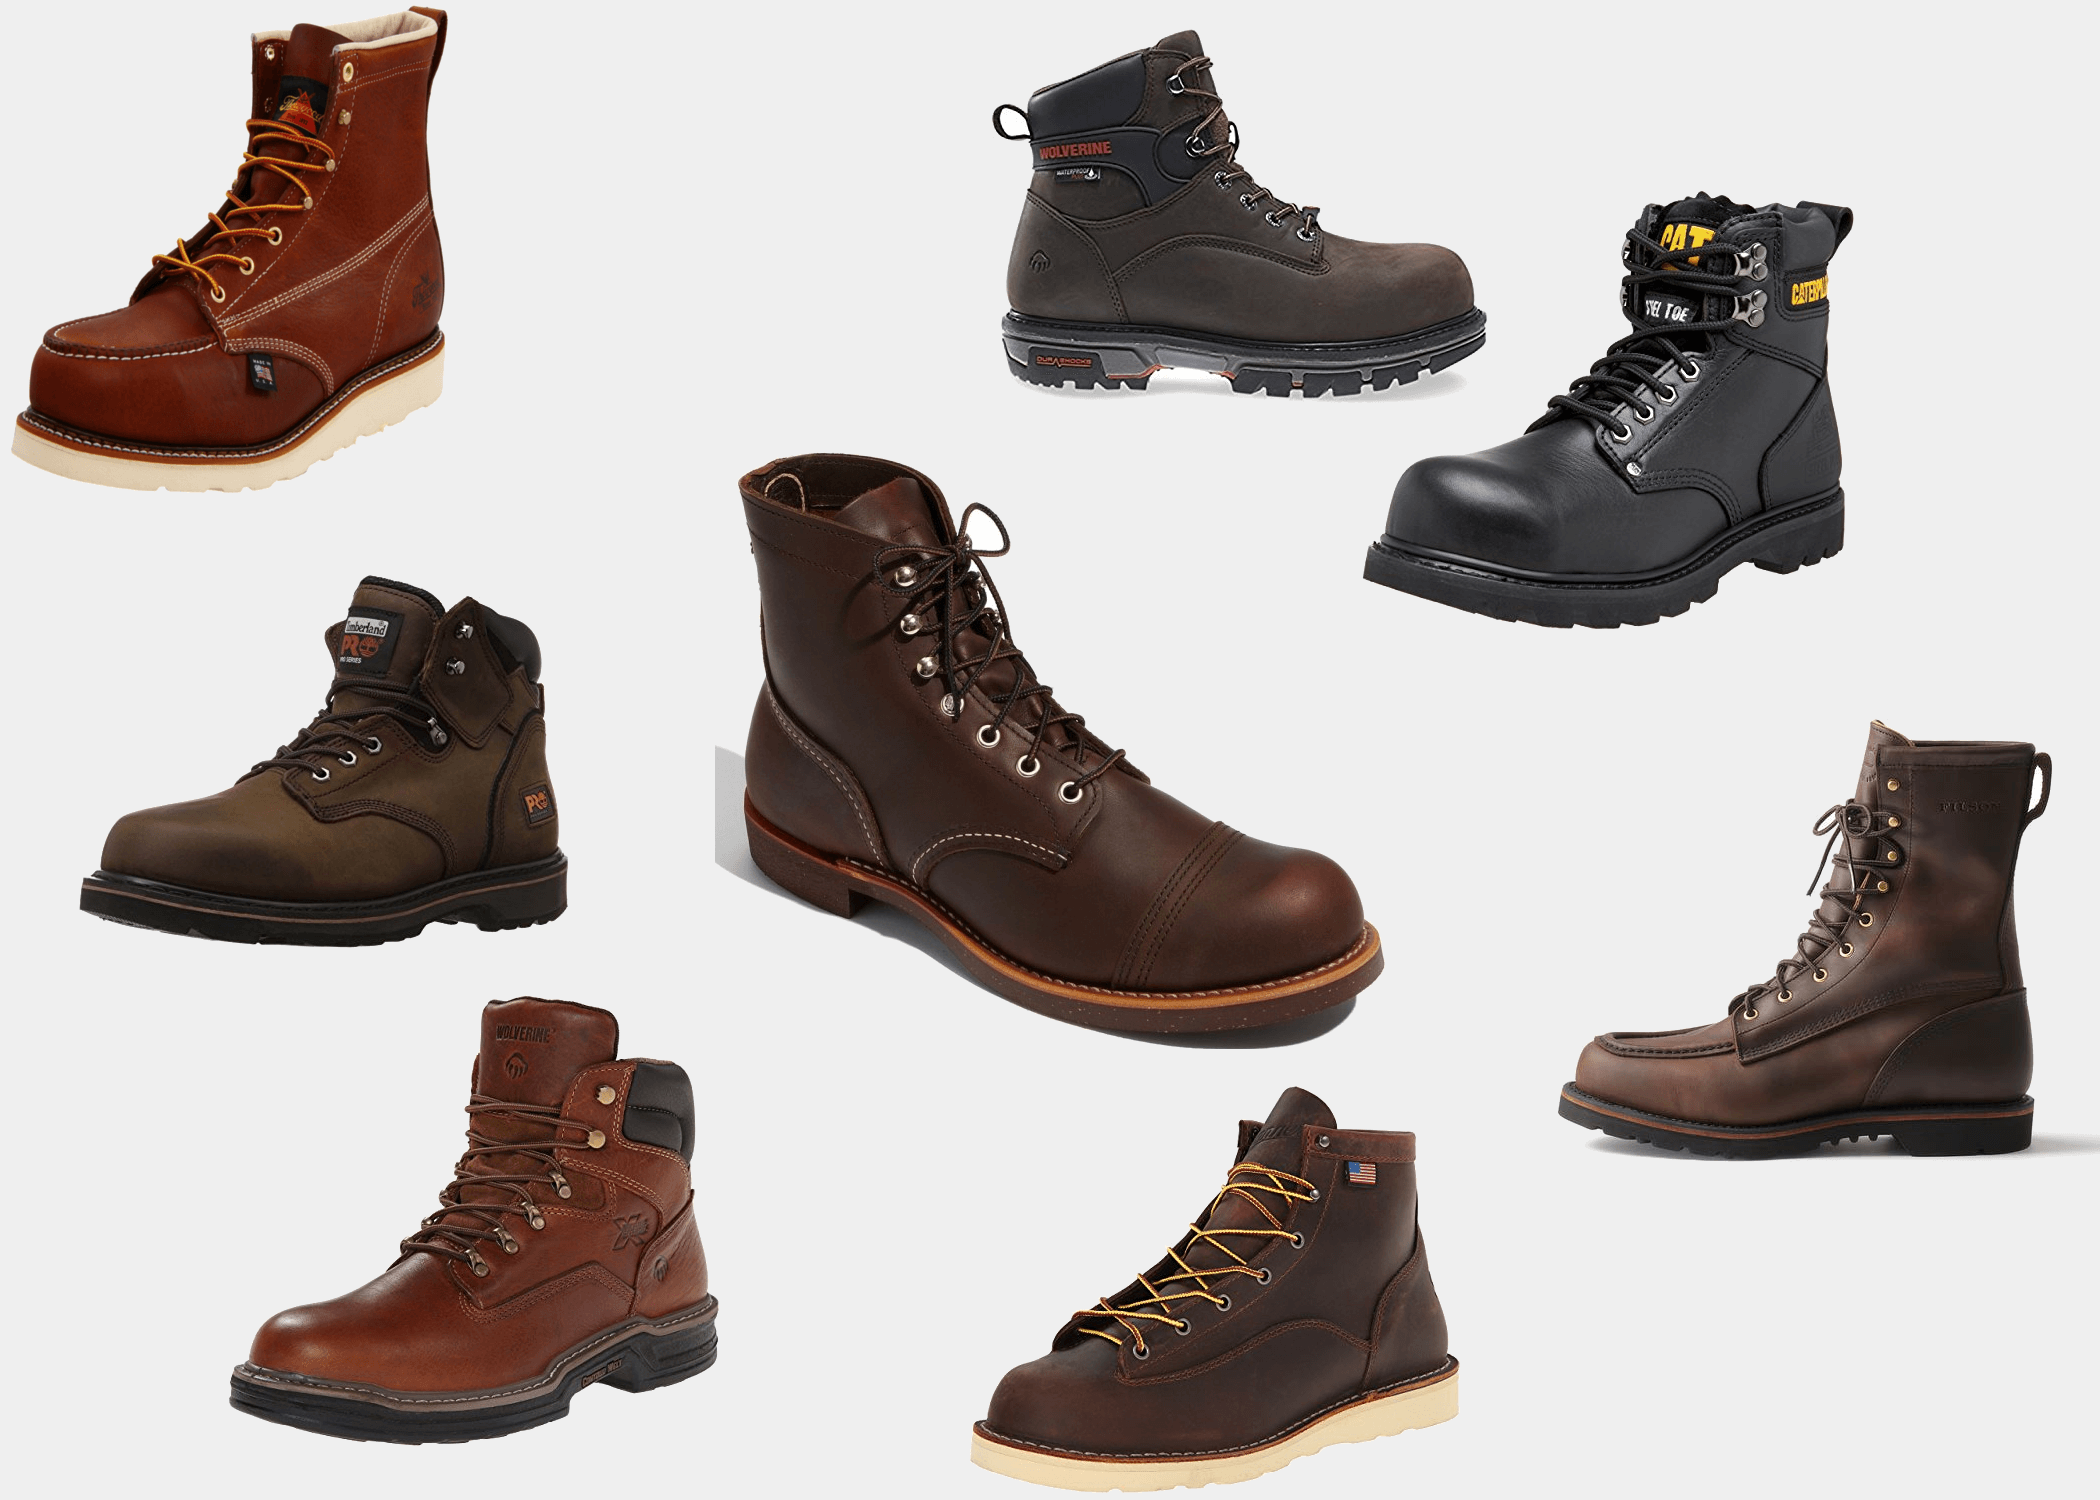 5af06d7abb72 The 11 Best Work Boots for Men